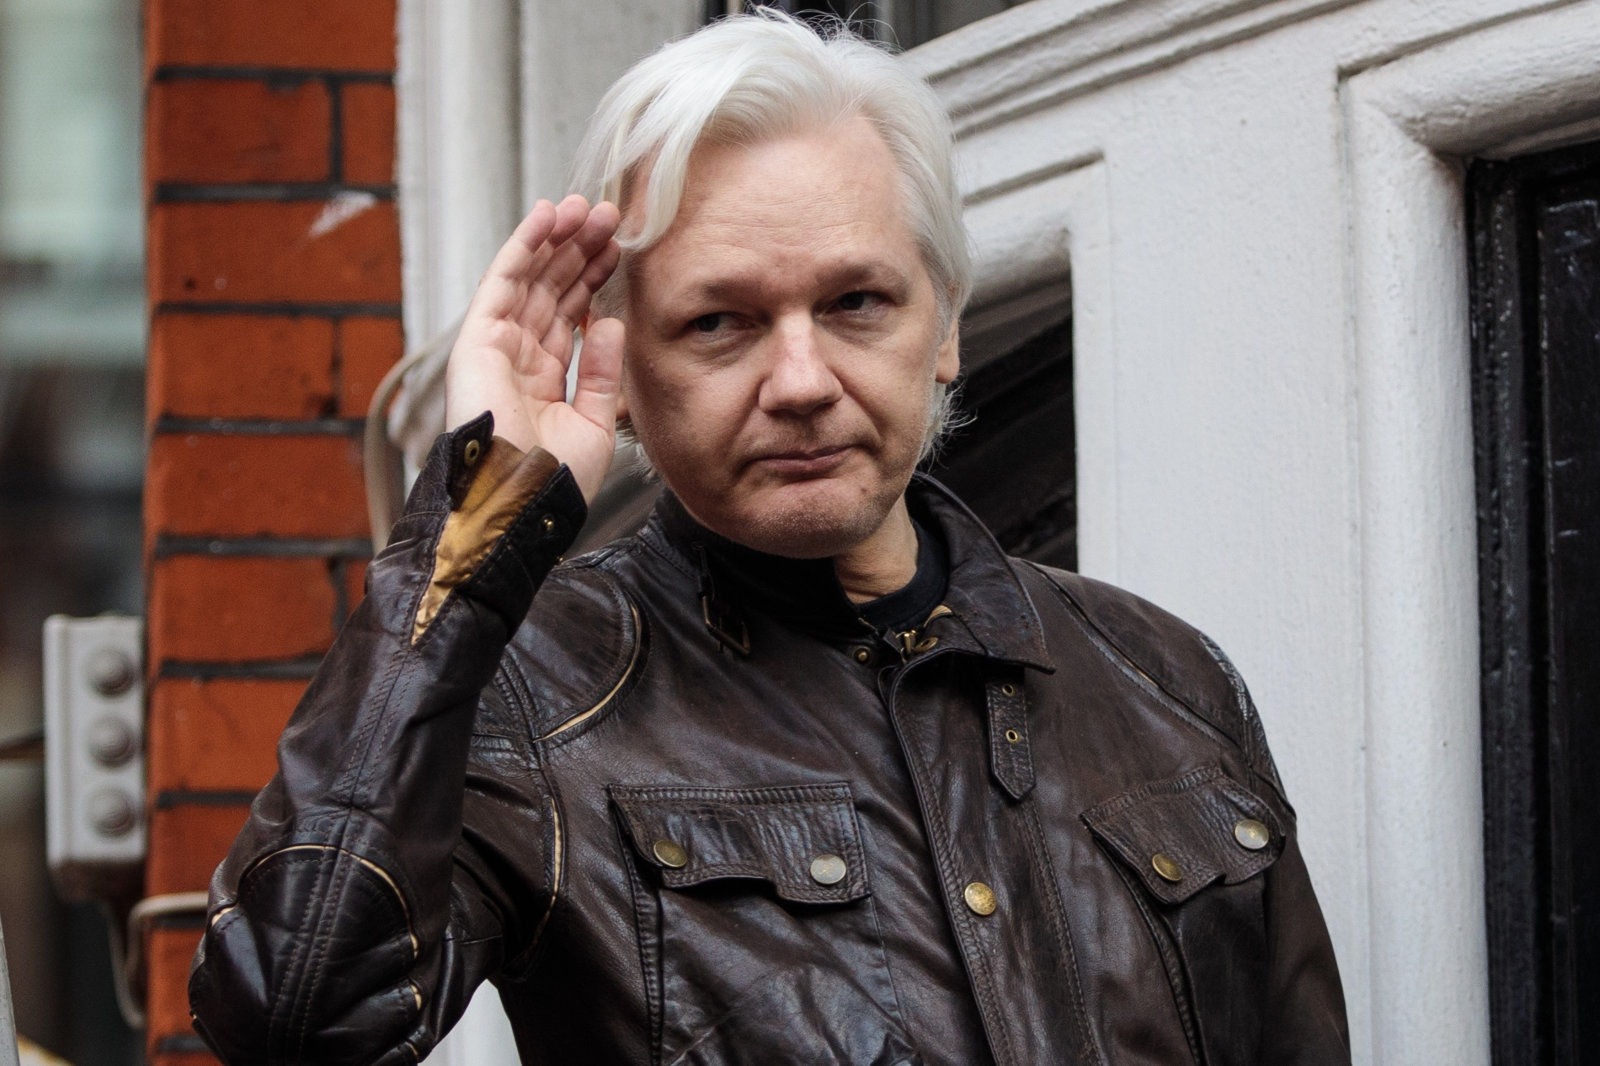 What legacy will WikiLeaks founder Julian Assange leave behind? | DeviceDaily.com